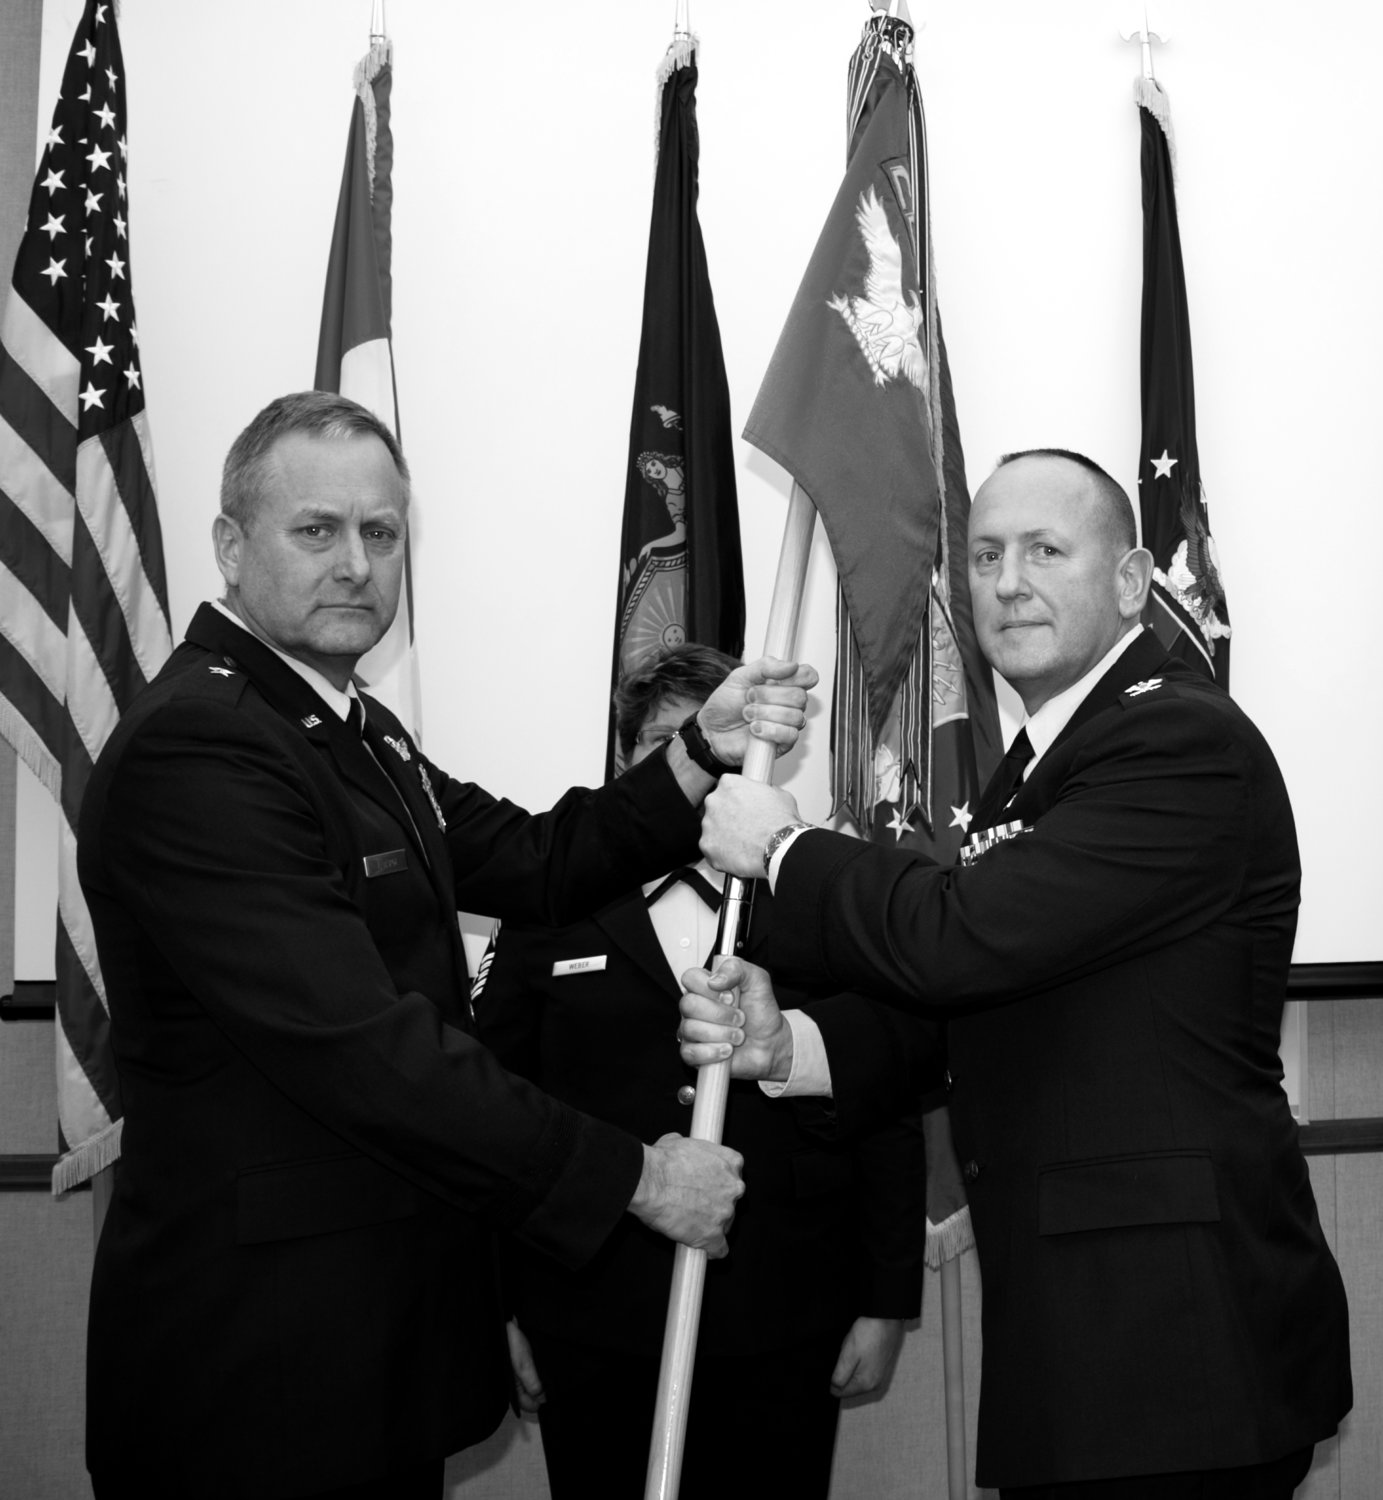 ASSUMING COMMAND — Col. Paul M. Bishop, right, receives the guidon of the 224th Air Defense Group (ADG) from New York Air National Guard commander Brig. Gen. Timothy LaBarge during a change of command ceremony Thursday. The ceremony was at the Rome-based Eastern Air Defense Sector which is associated with the 224th ADG.